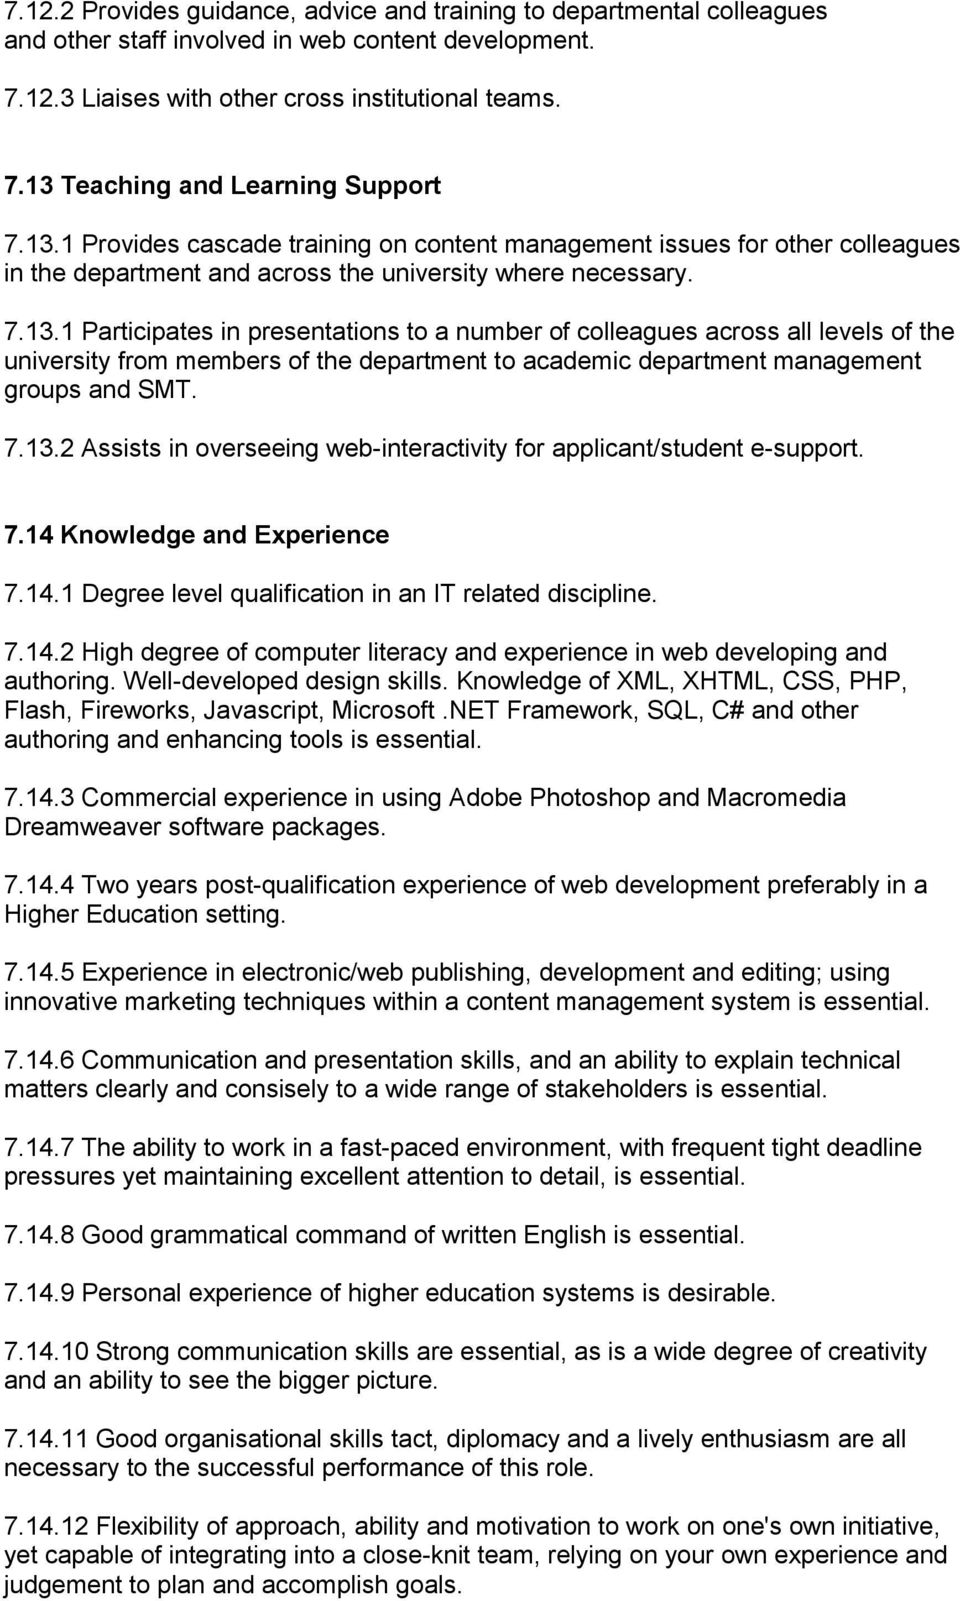 7.13.2 Assists in overseeing web-interactivity for applicant/student e-support. 7.14 Knowledge and Experience 7.14.1 Degree level qualification in an IT related discipline. 7.14.2 High degree of computer literacy and experience in web developing and authoring.